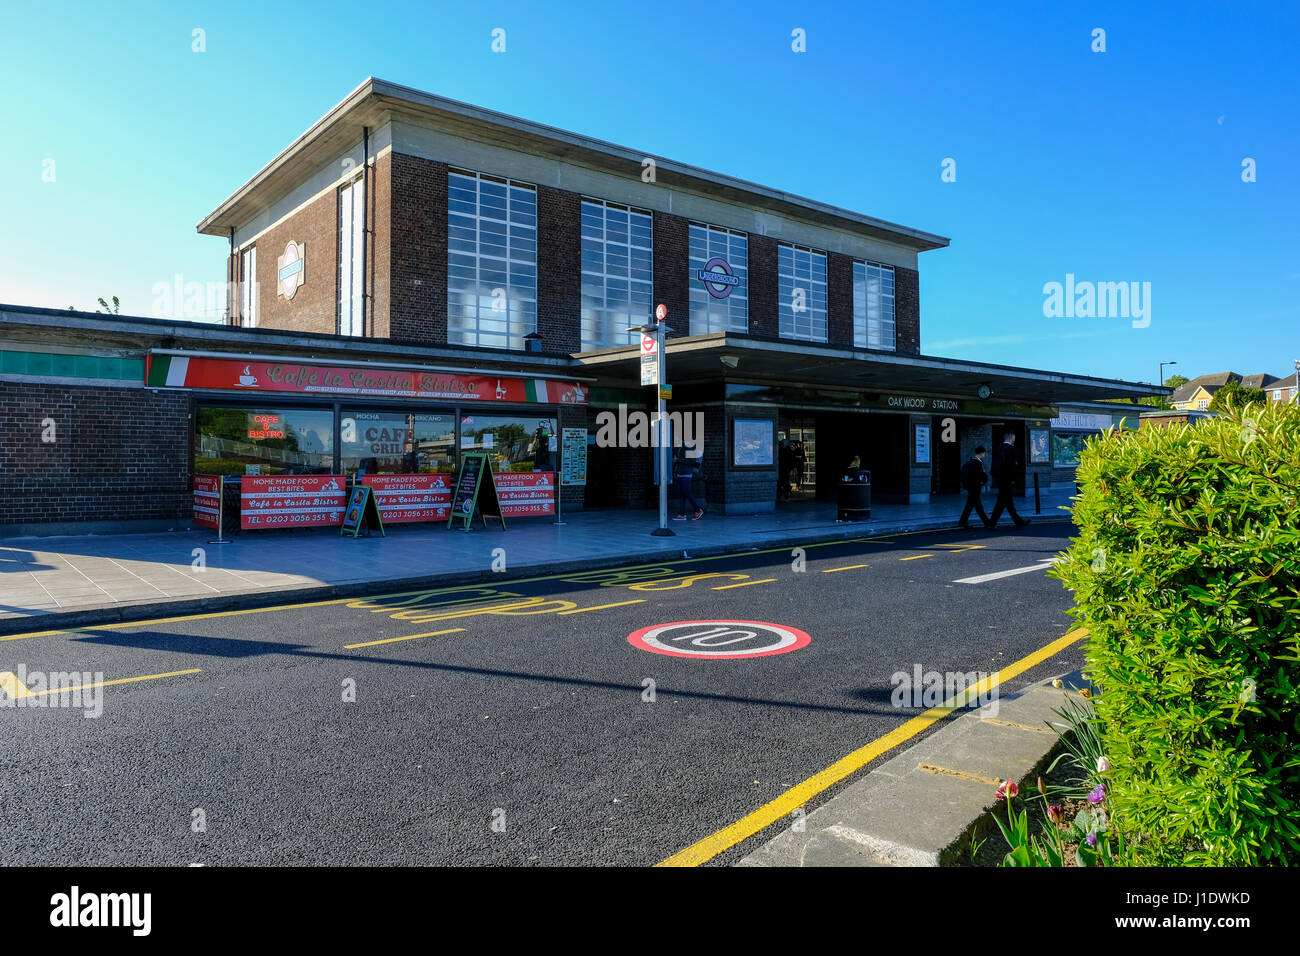 Oakwood Stock Photos Oakwood Stock Images Alamy: the oakwood